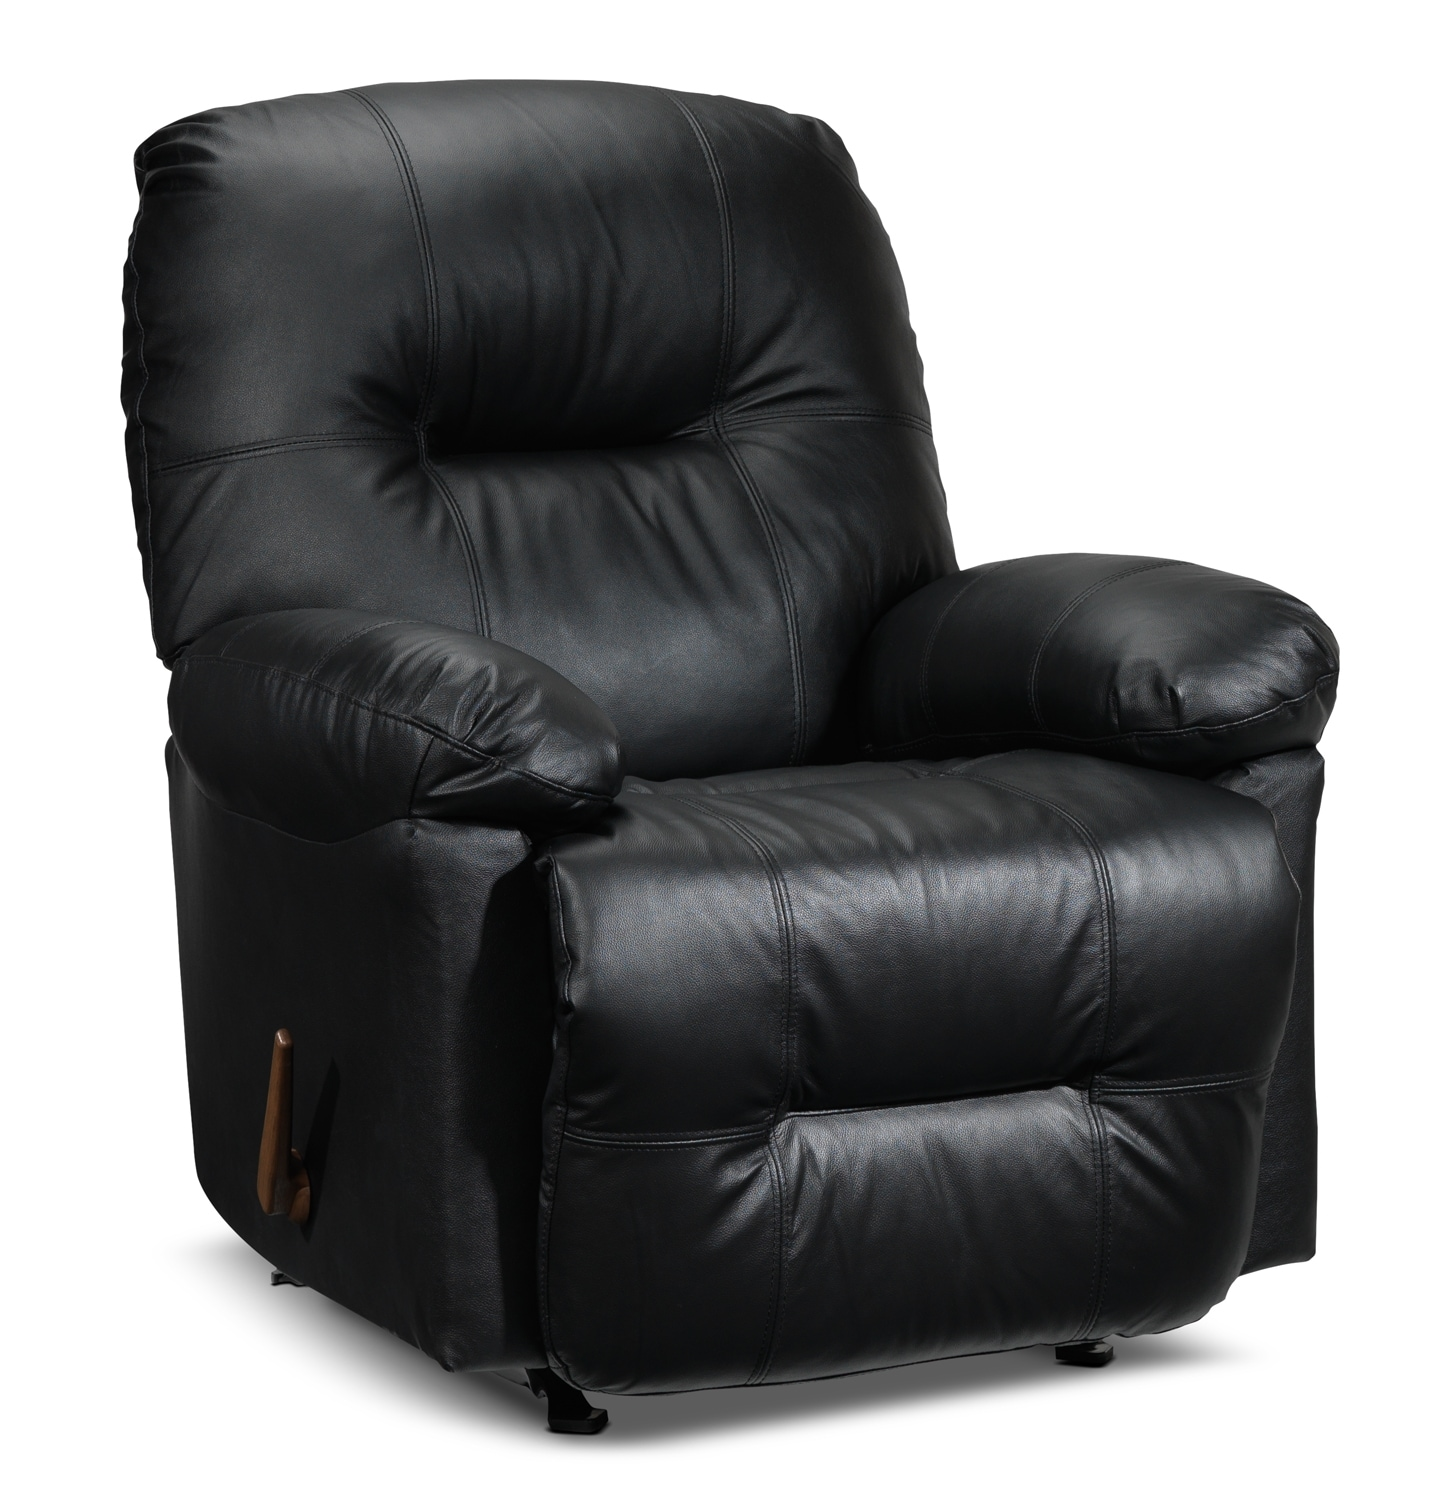 [Hunter Recliner - Black]